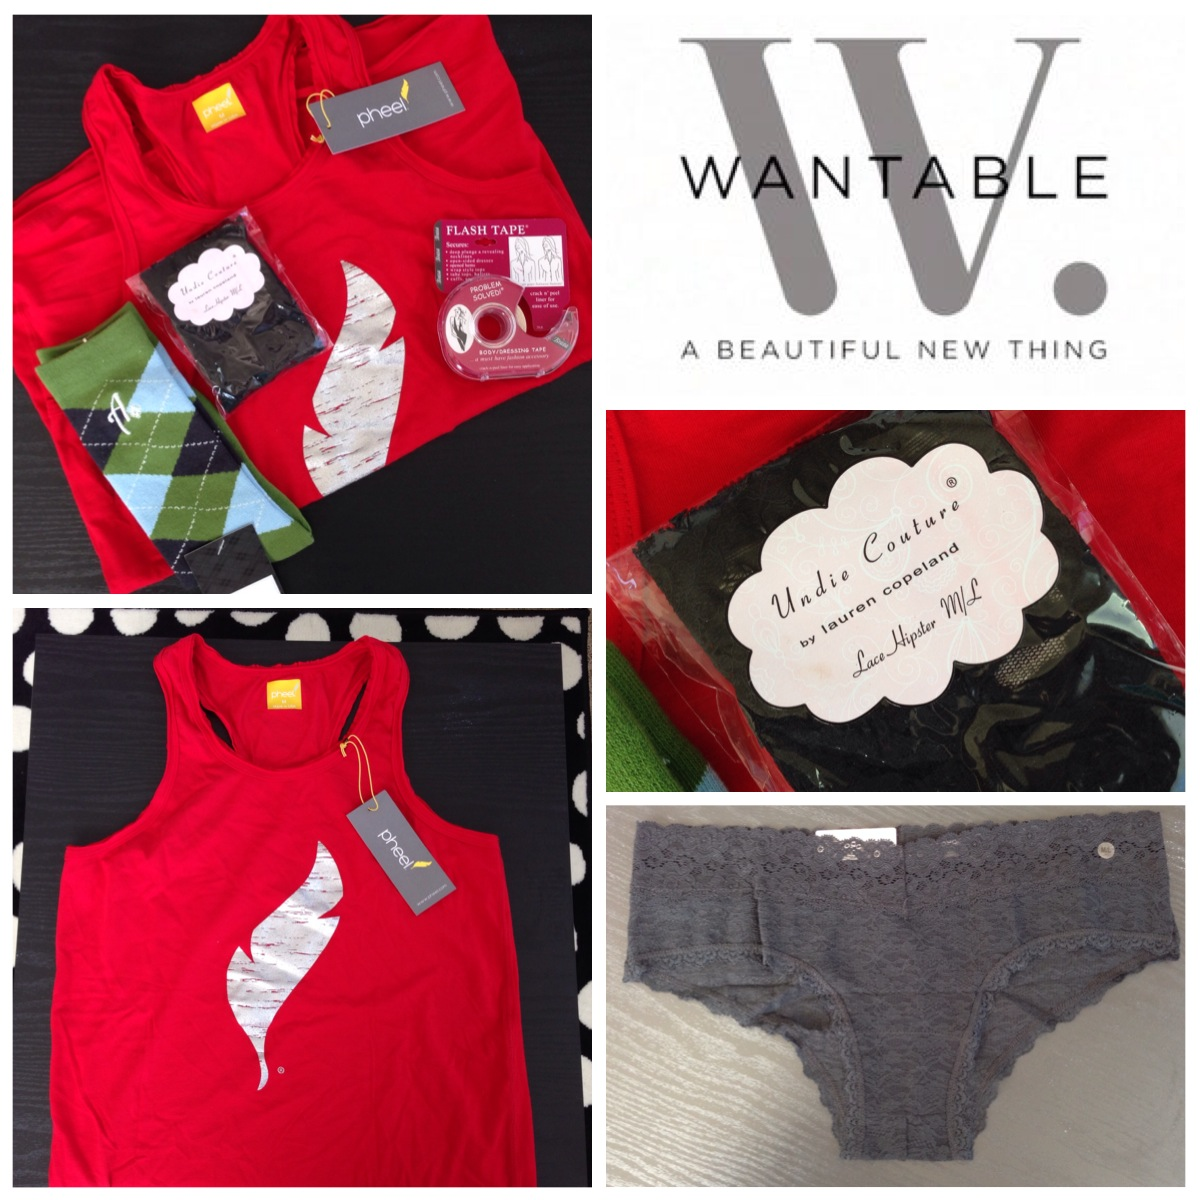 Wantable Intimates Box Review